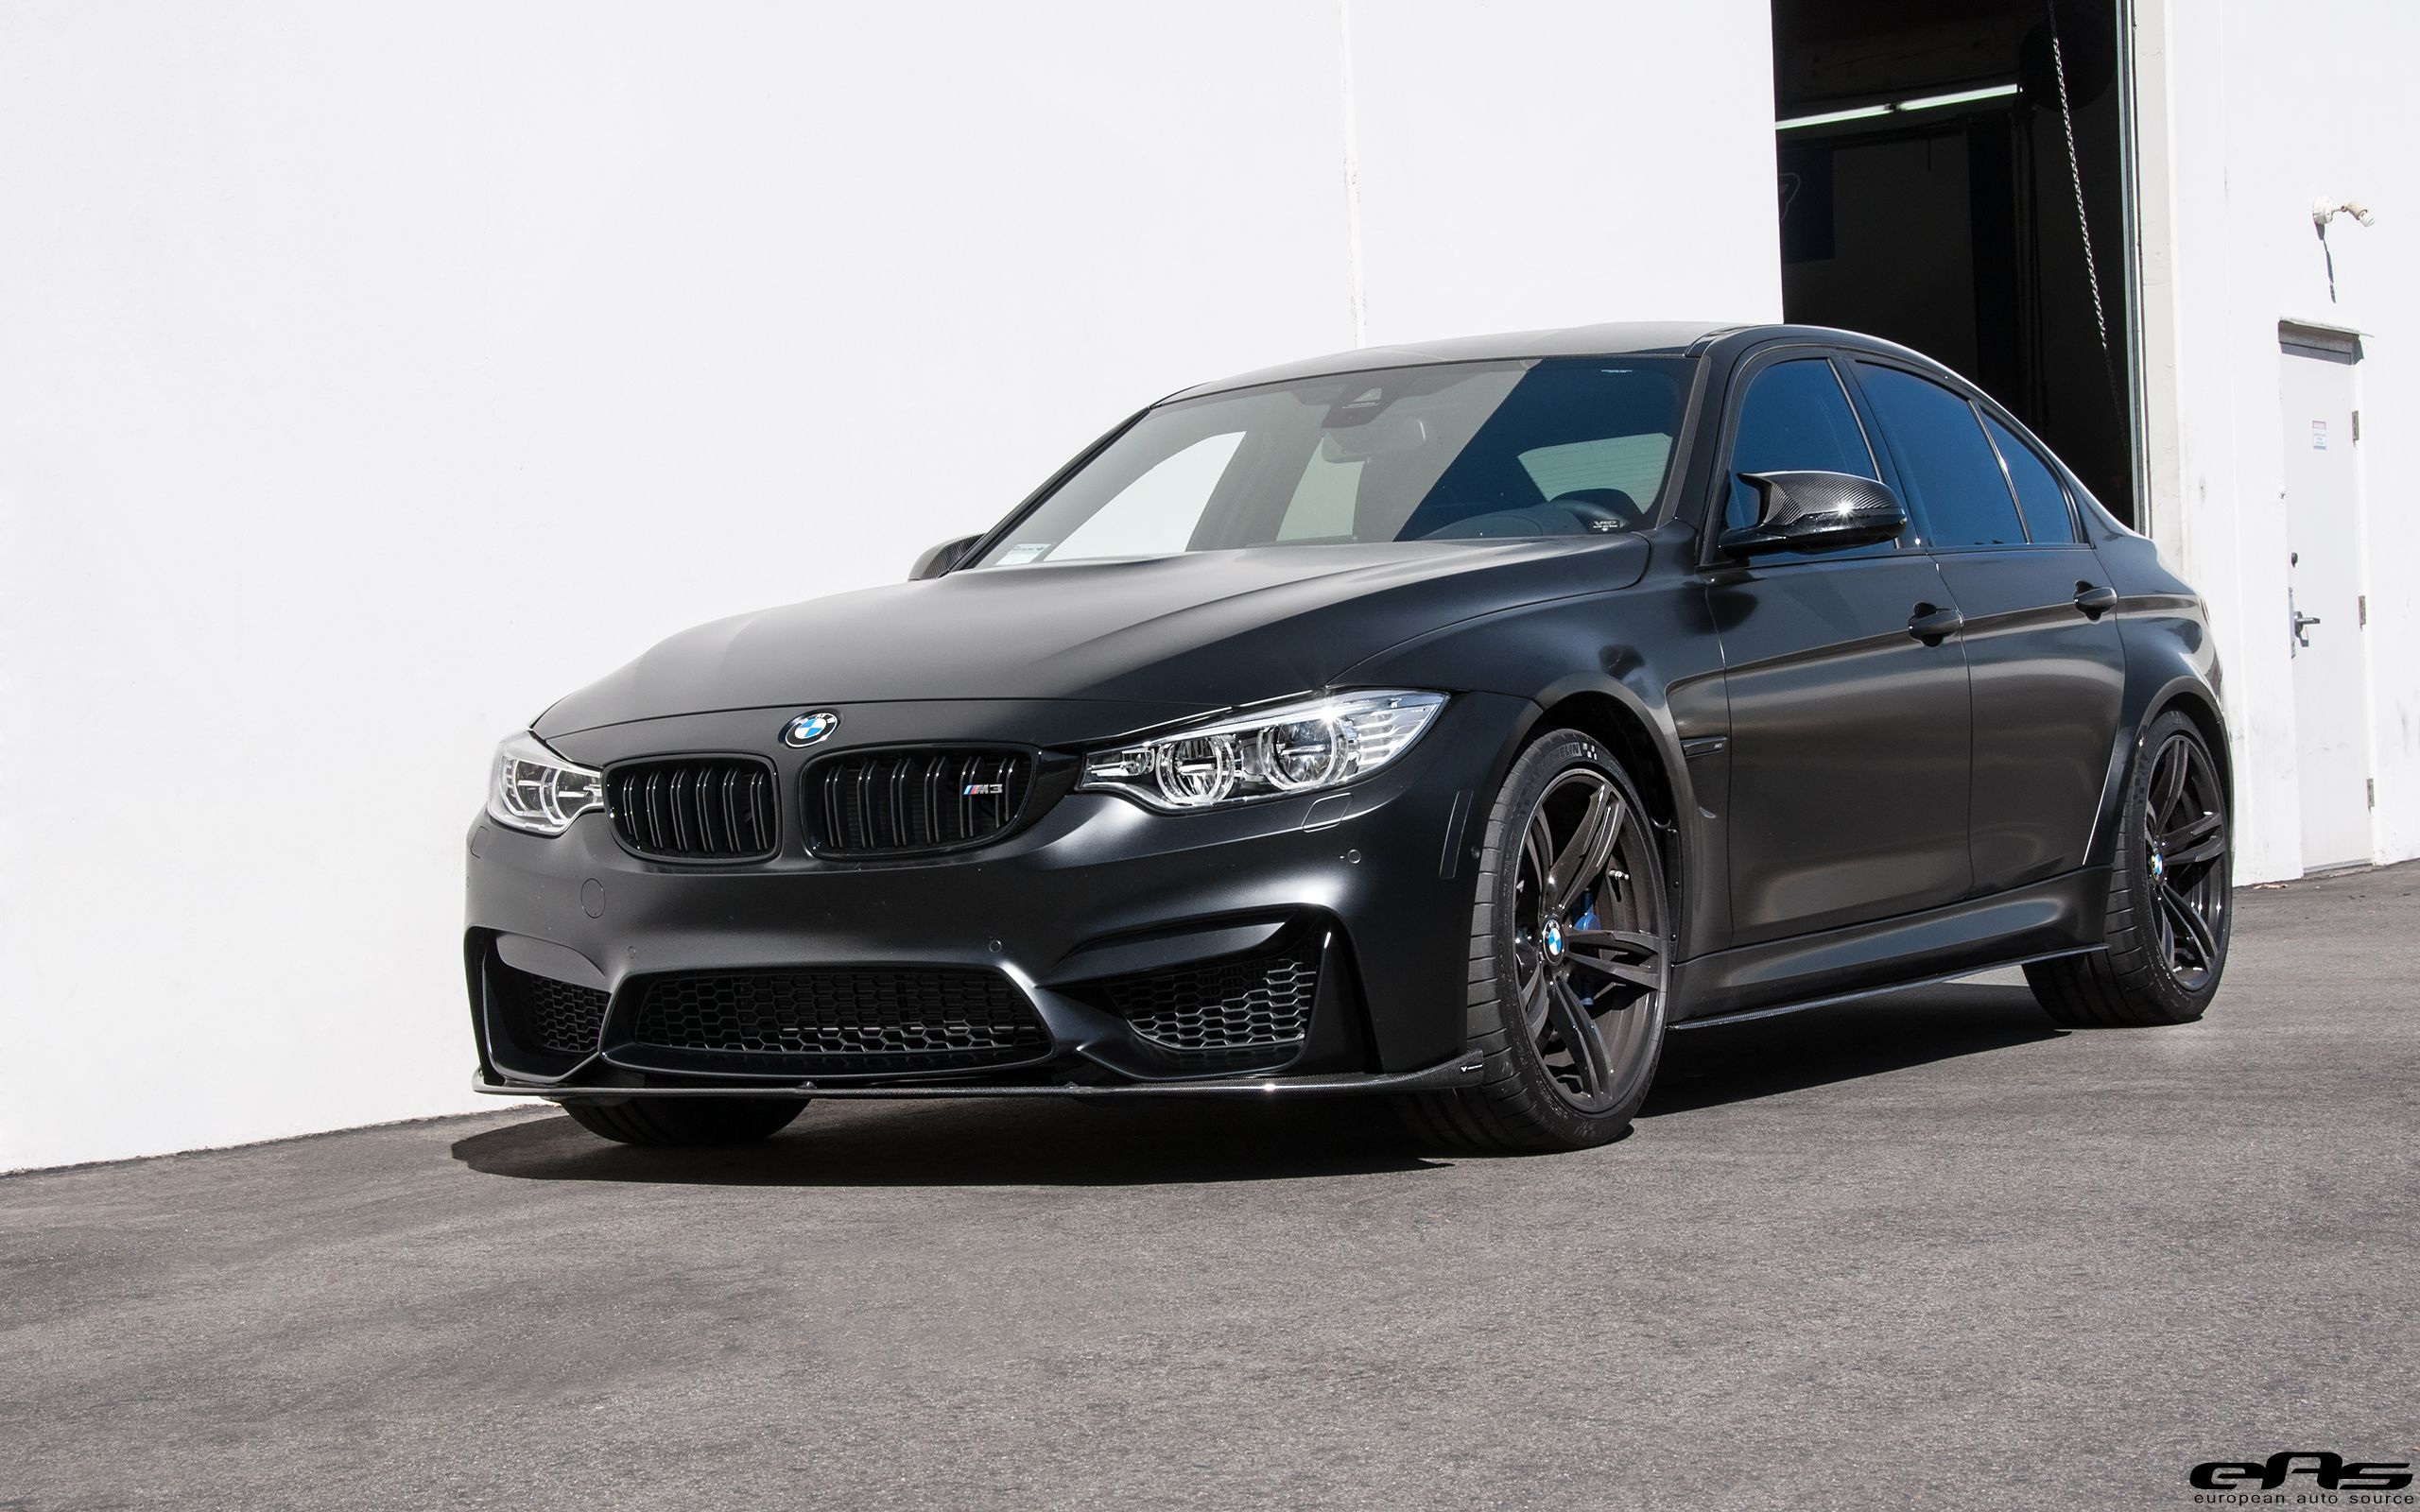 Frozen Black F80 M3 With Images Bmw Bmw M3 Black Bmw M3